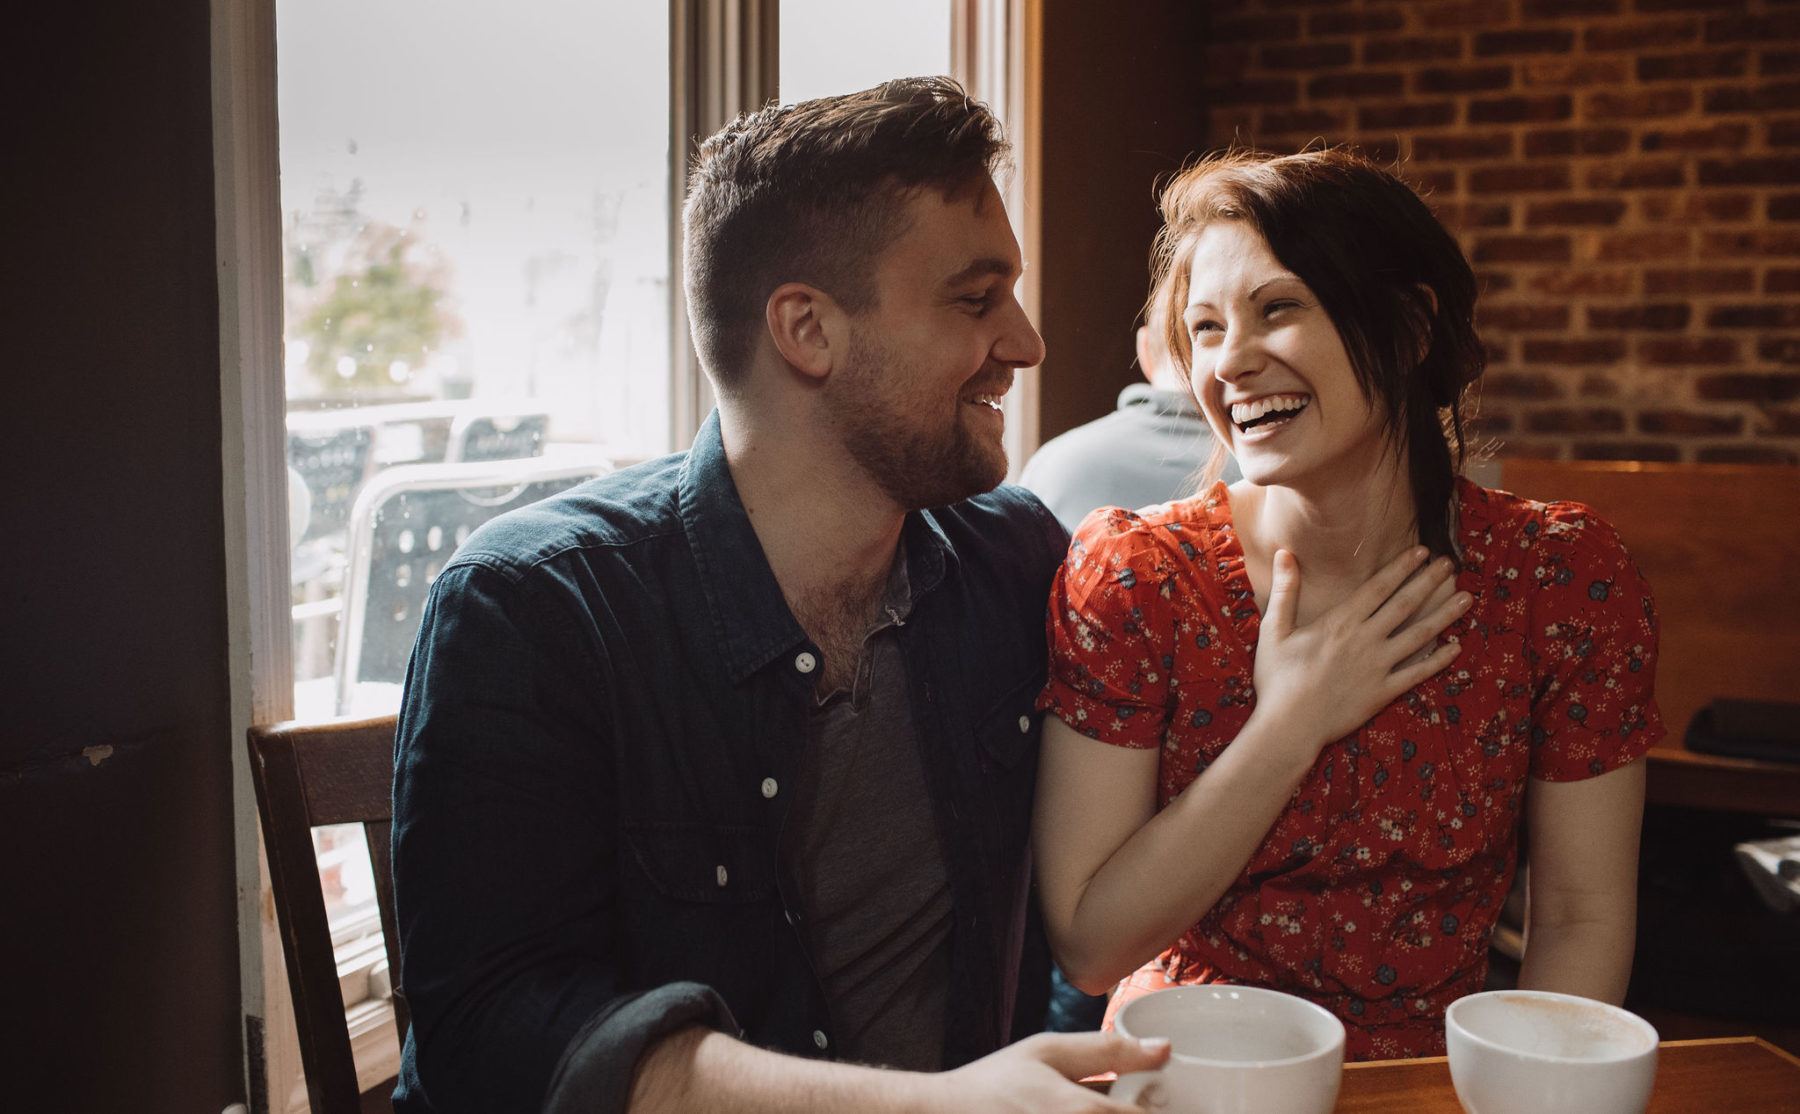 Coffee shop engagement session featured on Nashville Bride Guide